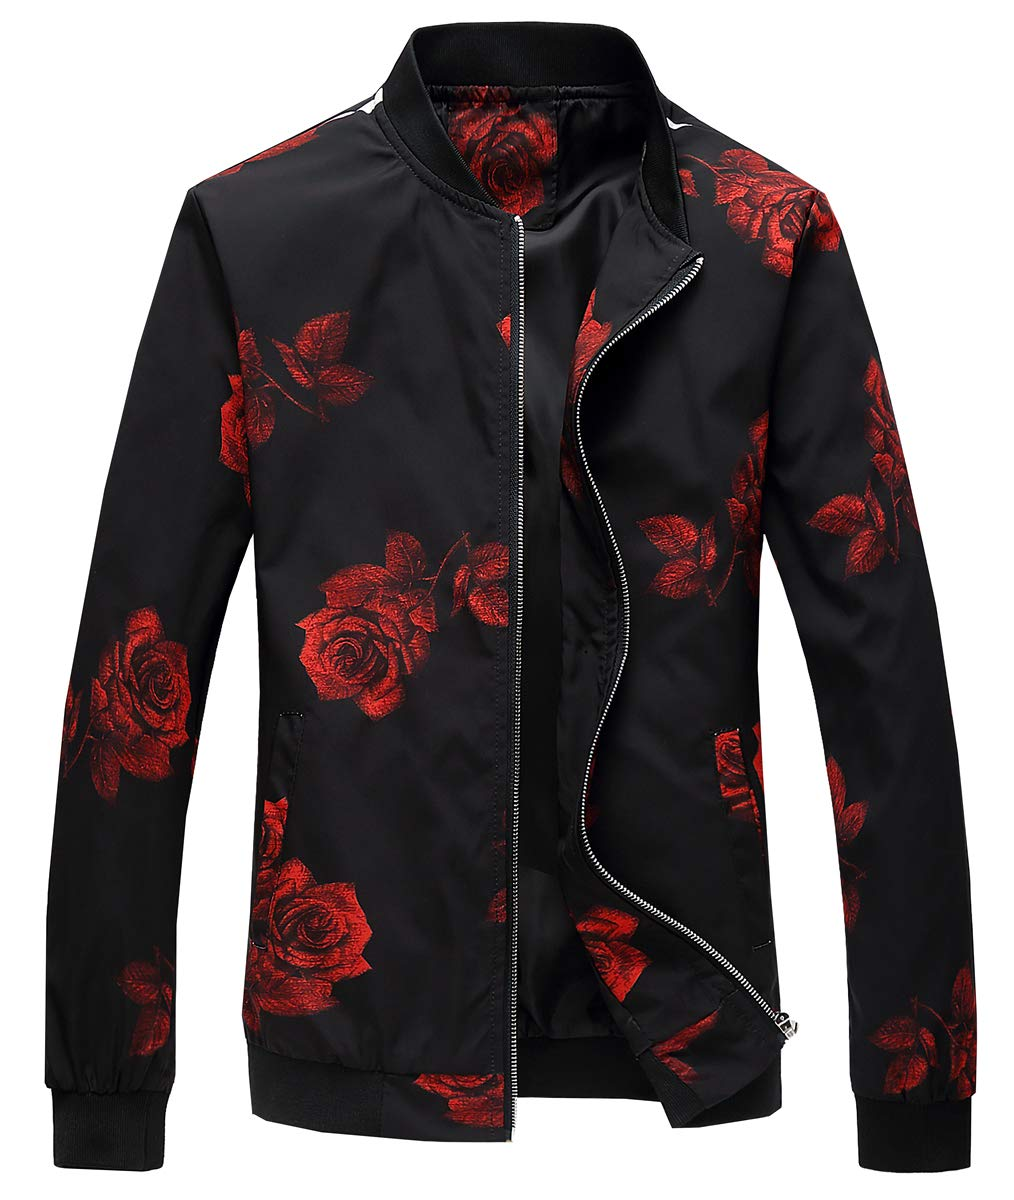 EMAOR Mens Men's Zipper Rose Flower Print Varsity Bomber Baseball Floral Jacket Coat Outwear by EMAOR Mens